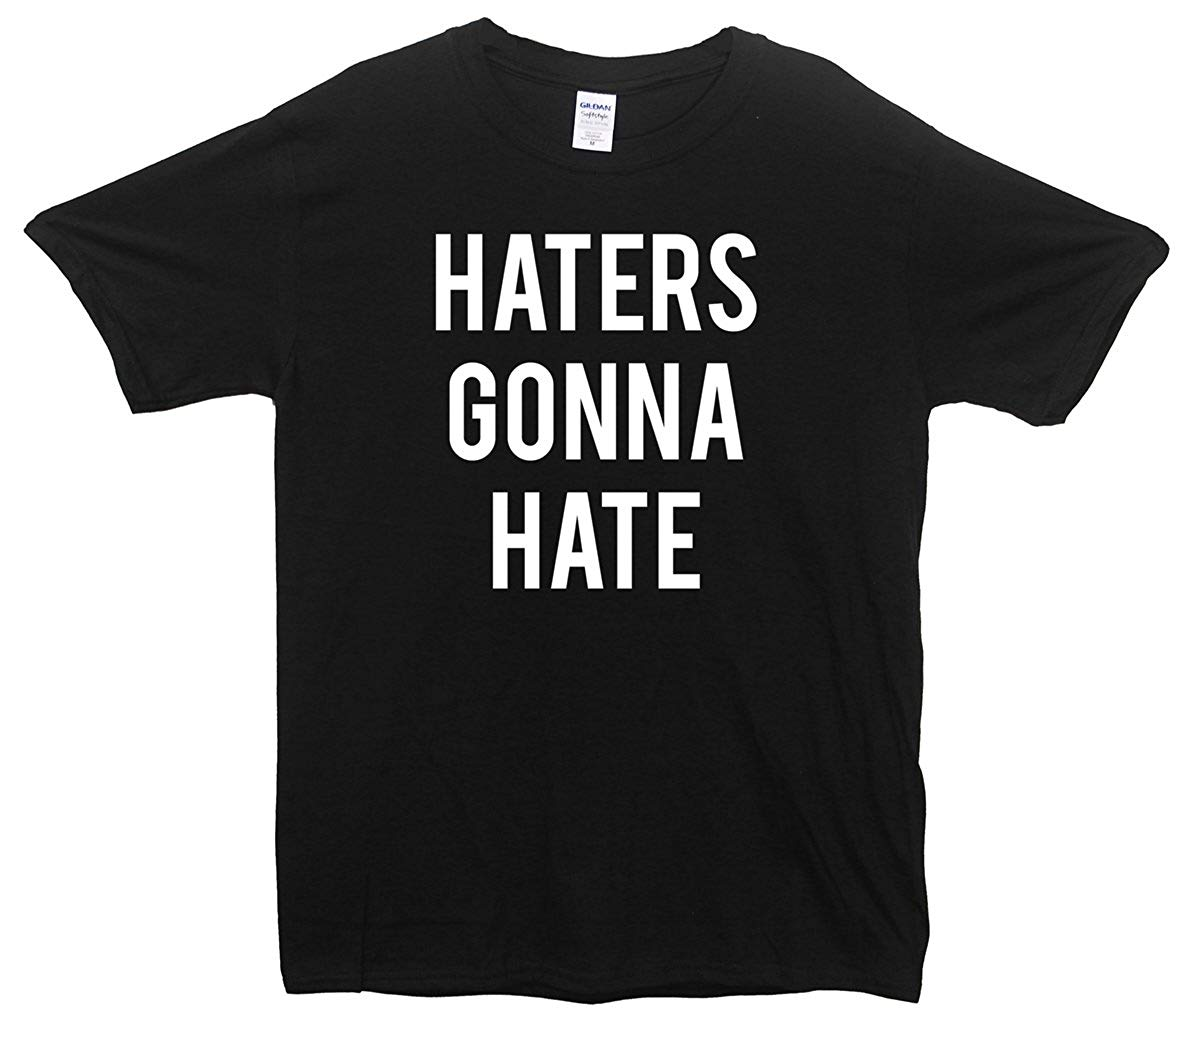 Fuck haters hands down hate liars and image by wesley